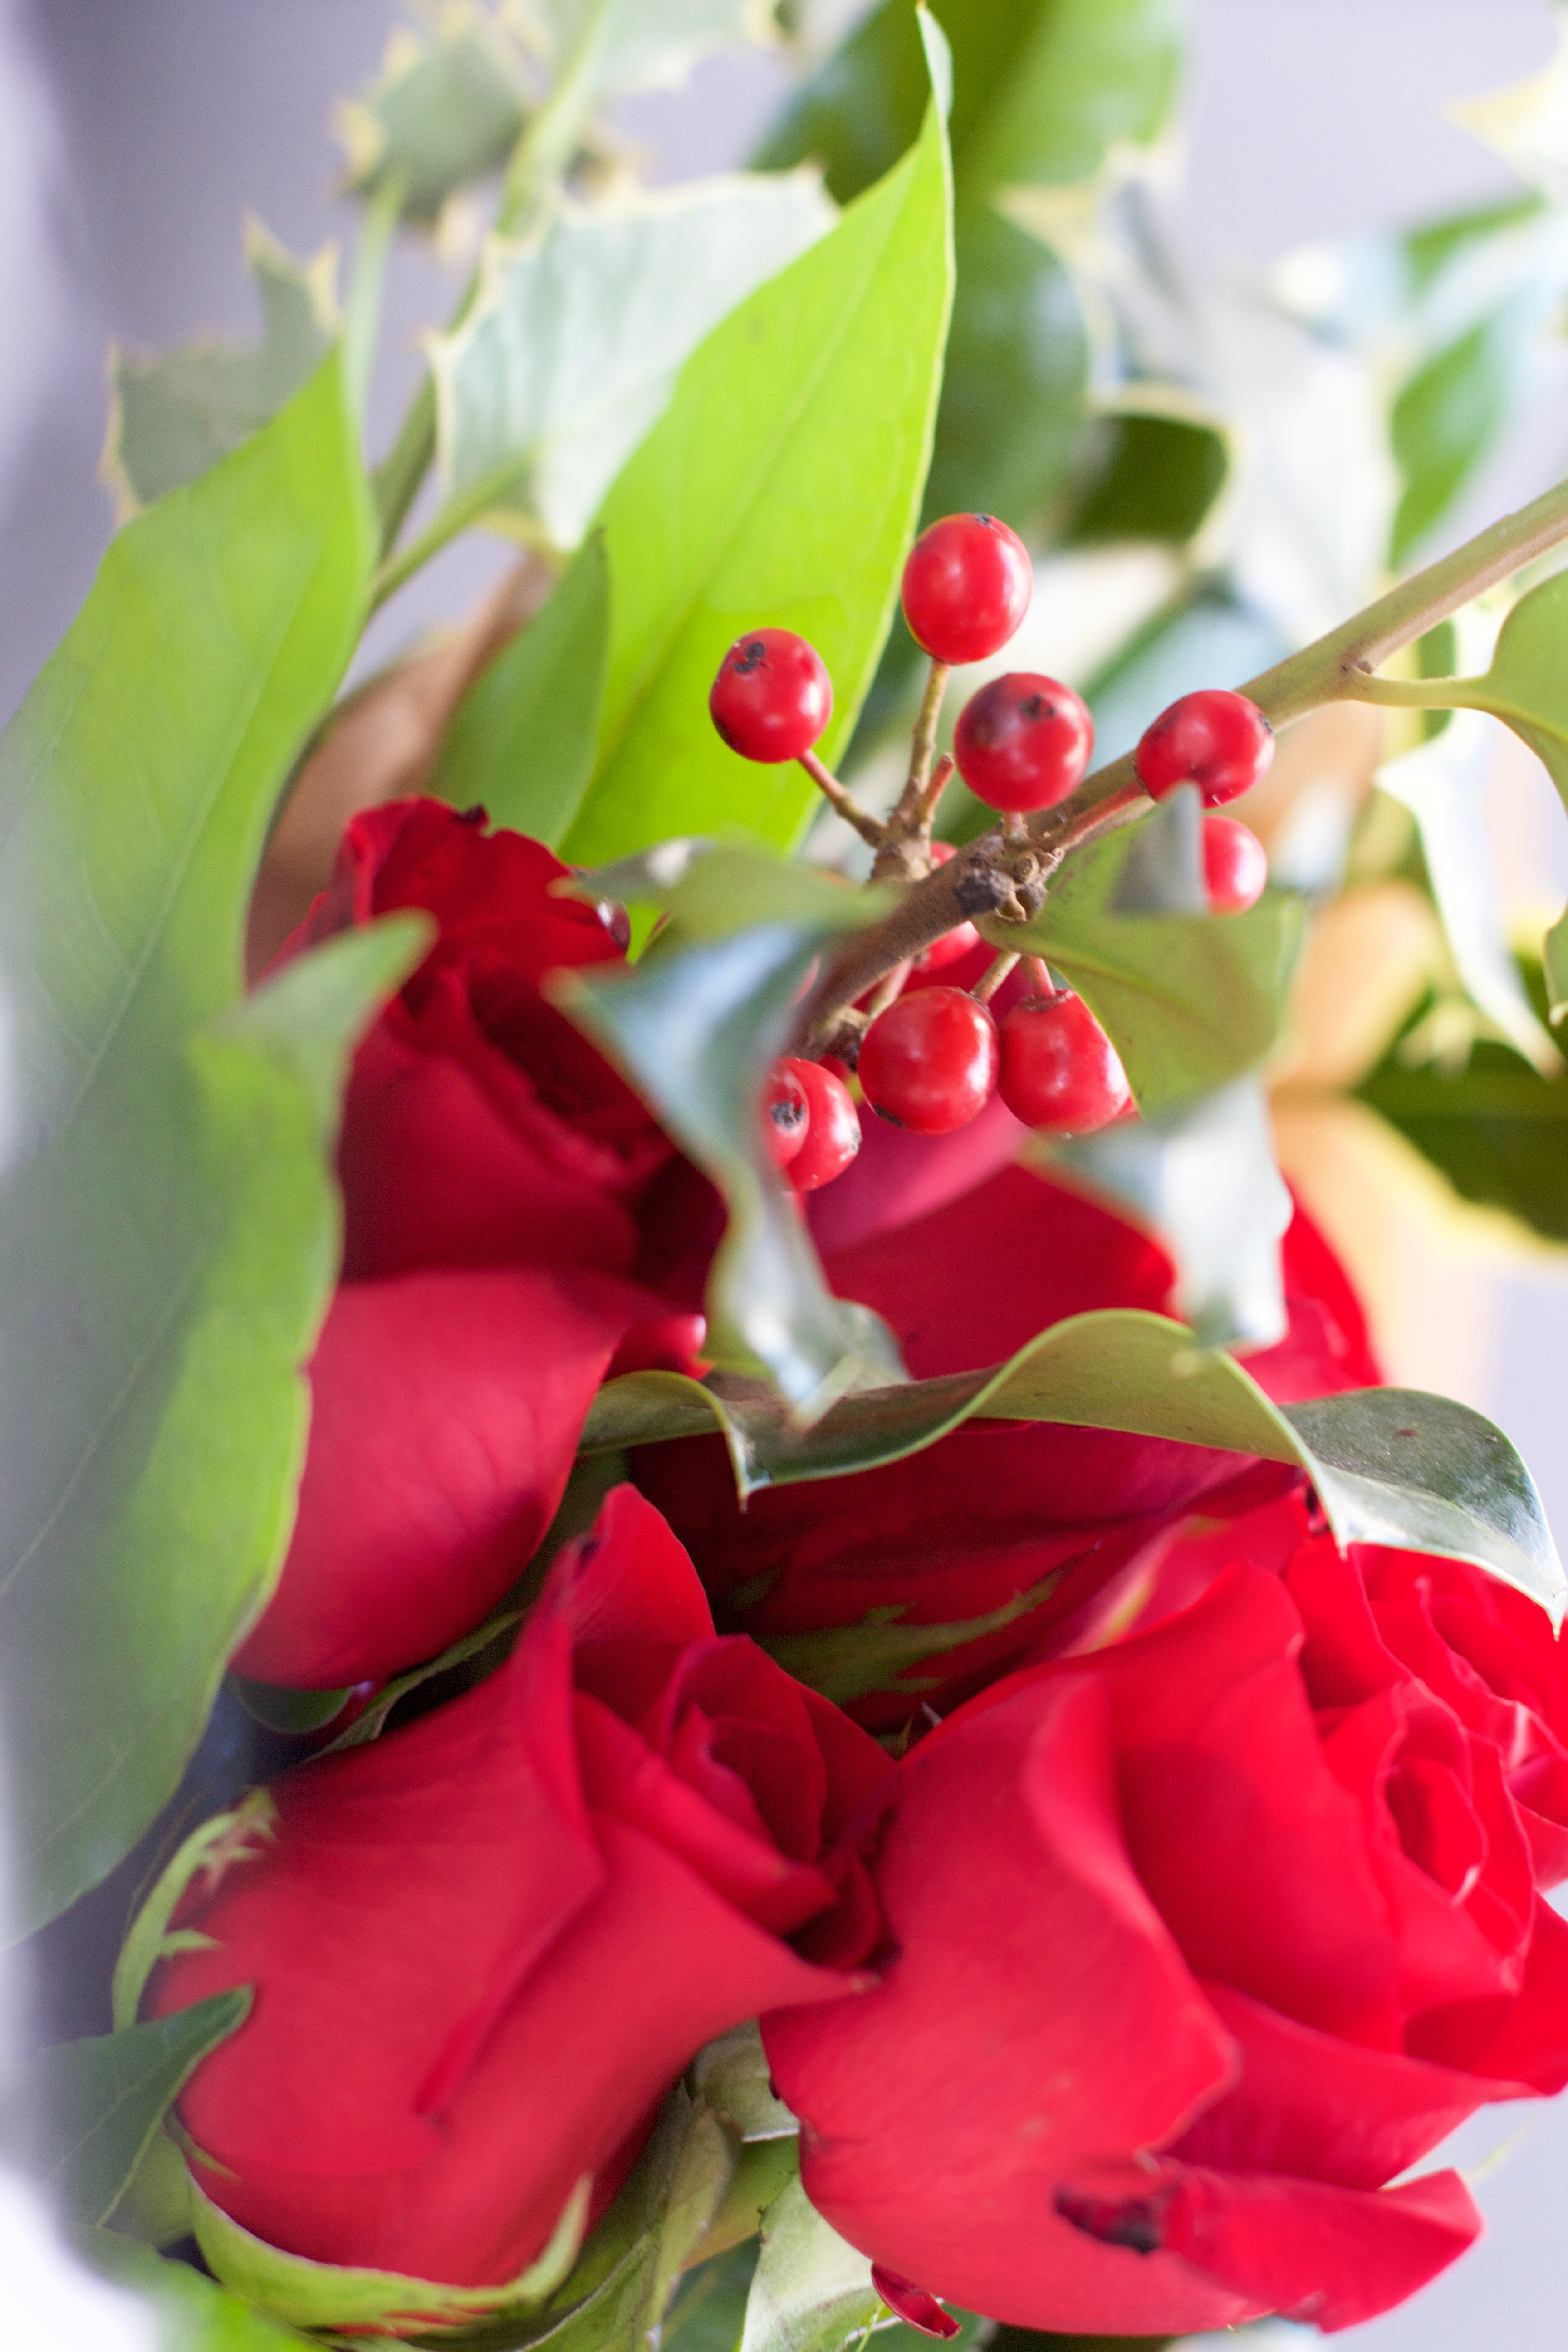 Christmas flowers and holly